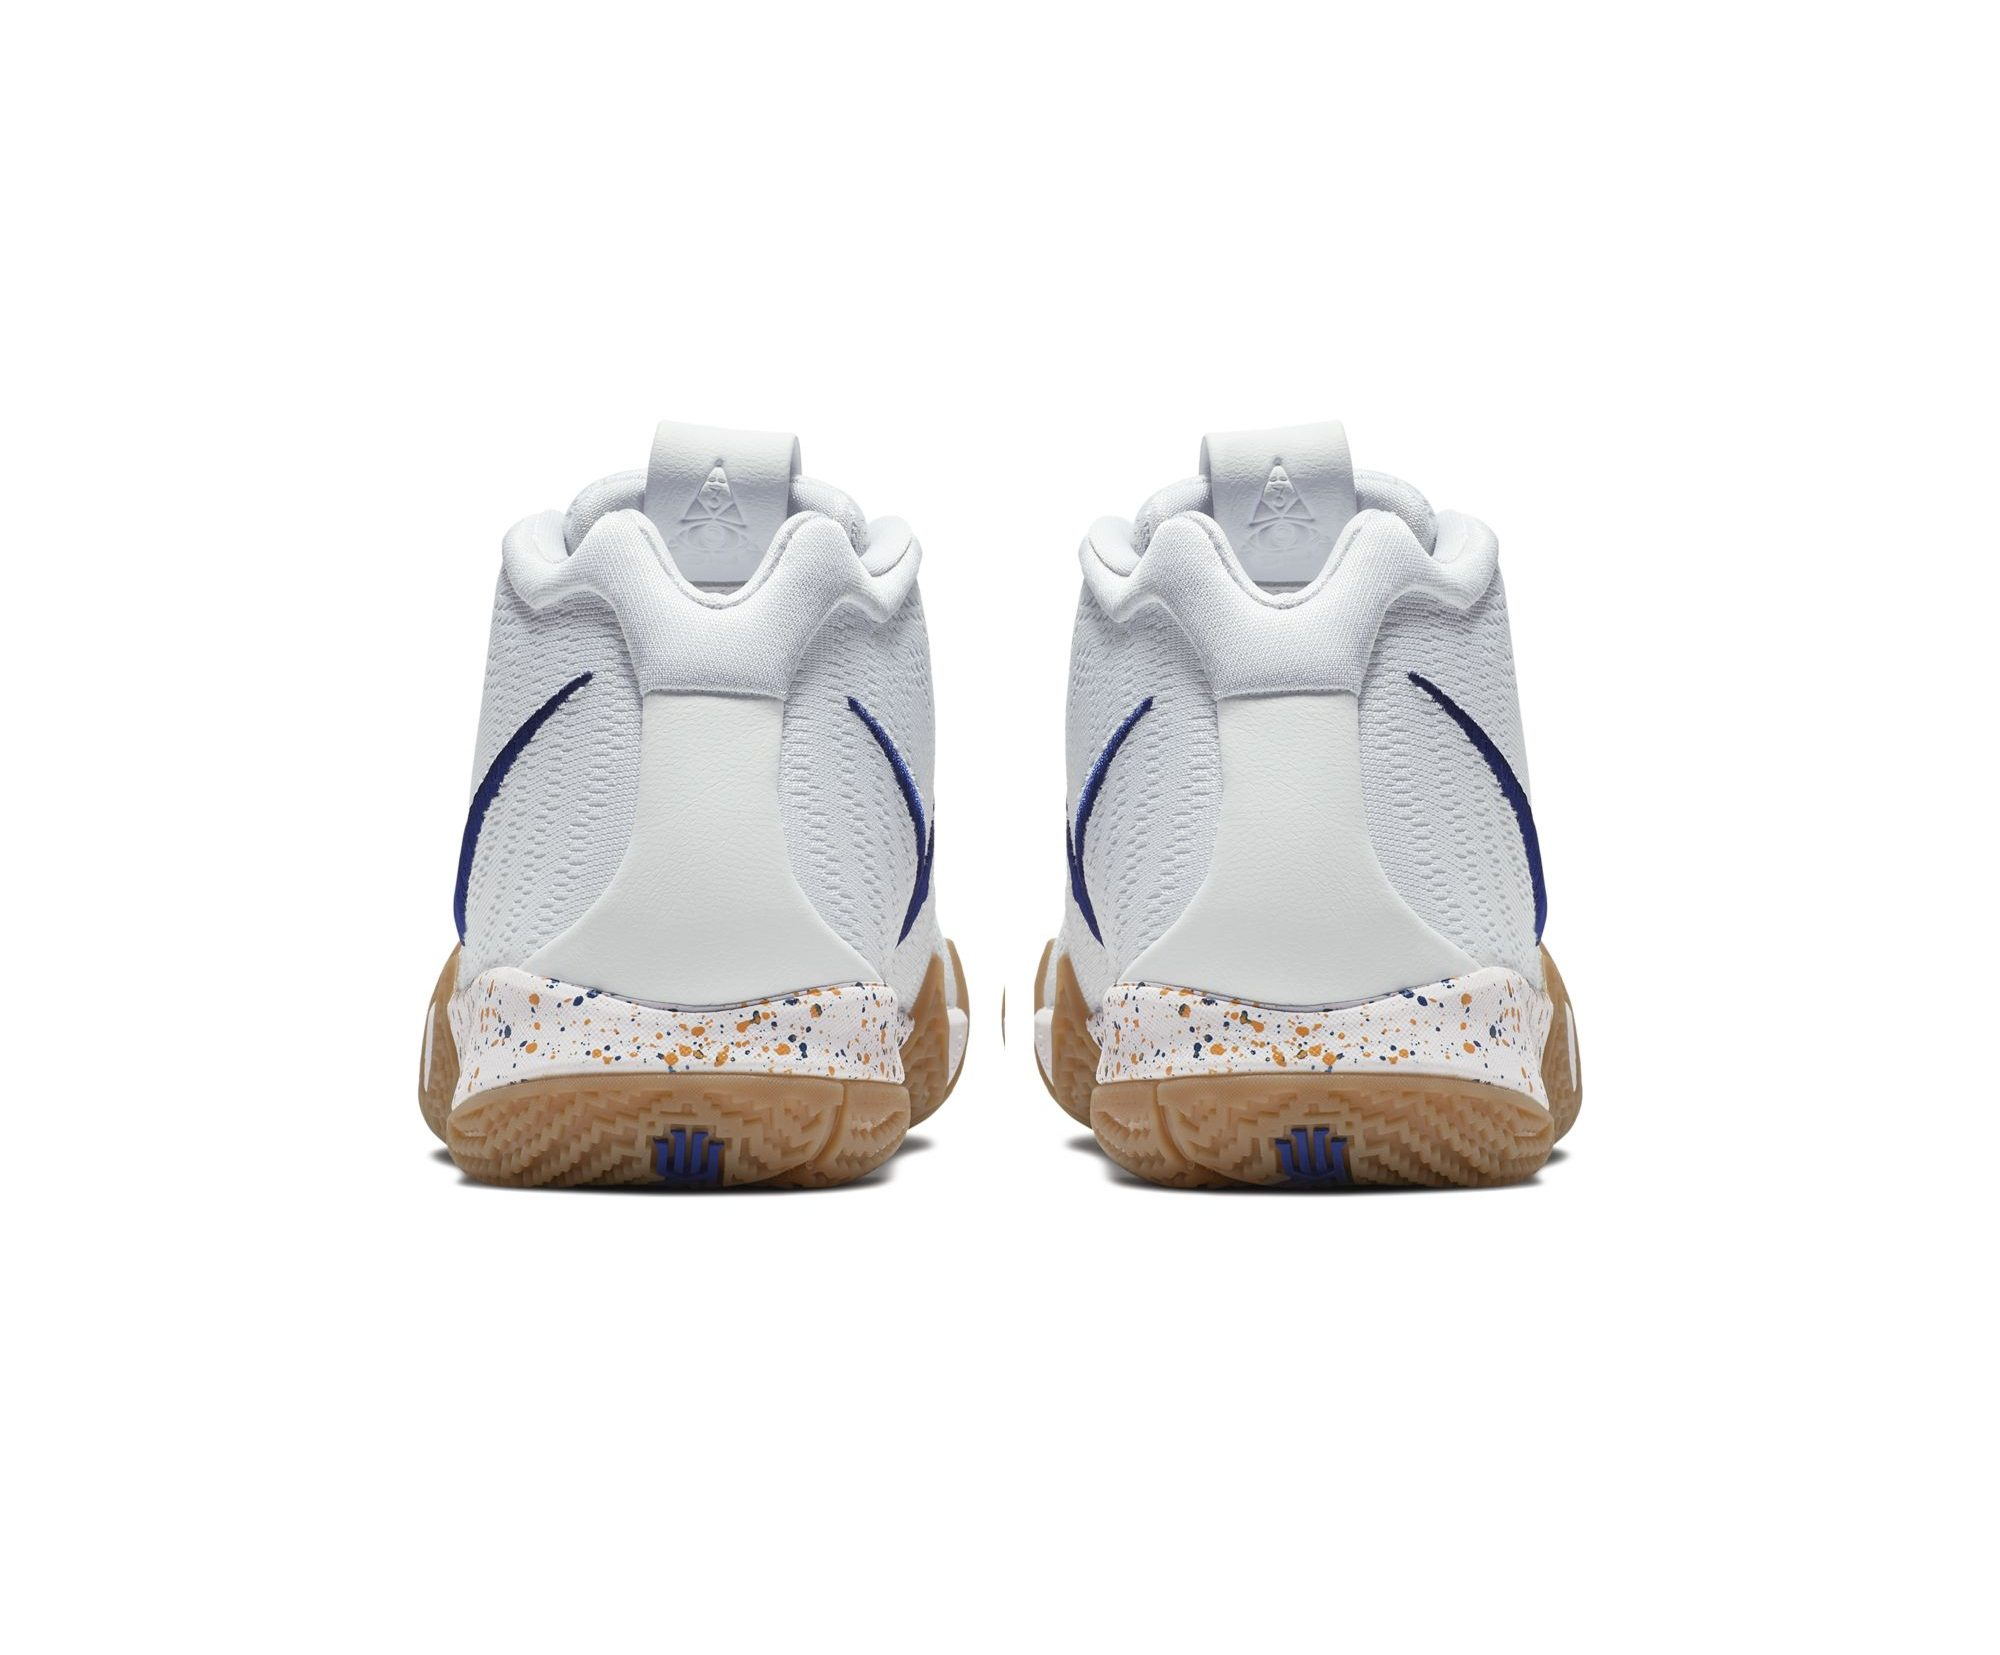 100% authentic 45973 7598c Nike Kyrie 4 Uncle Drew 4